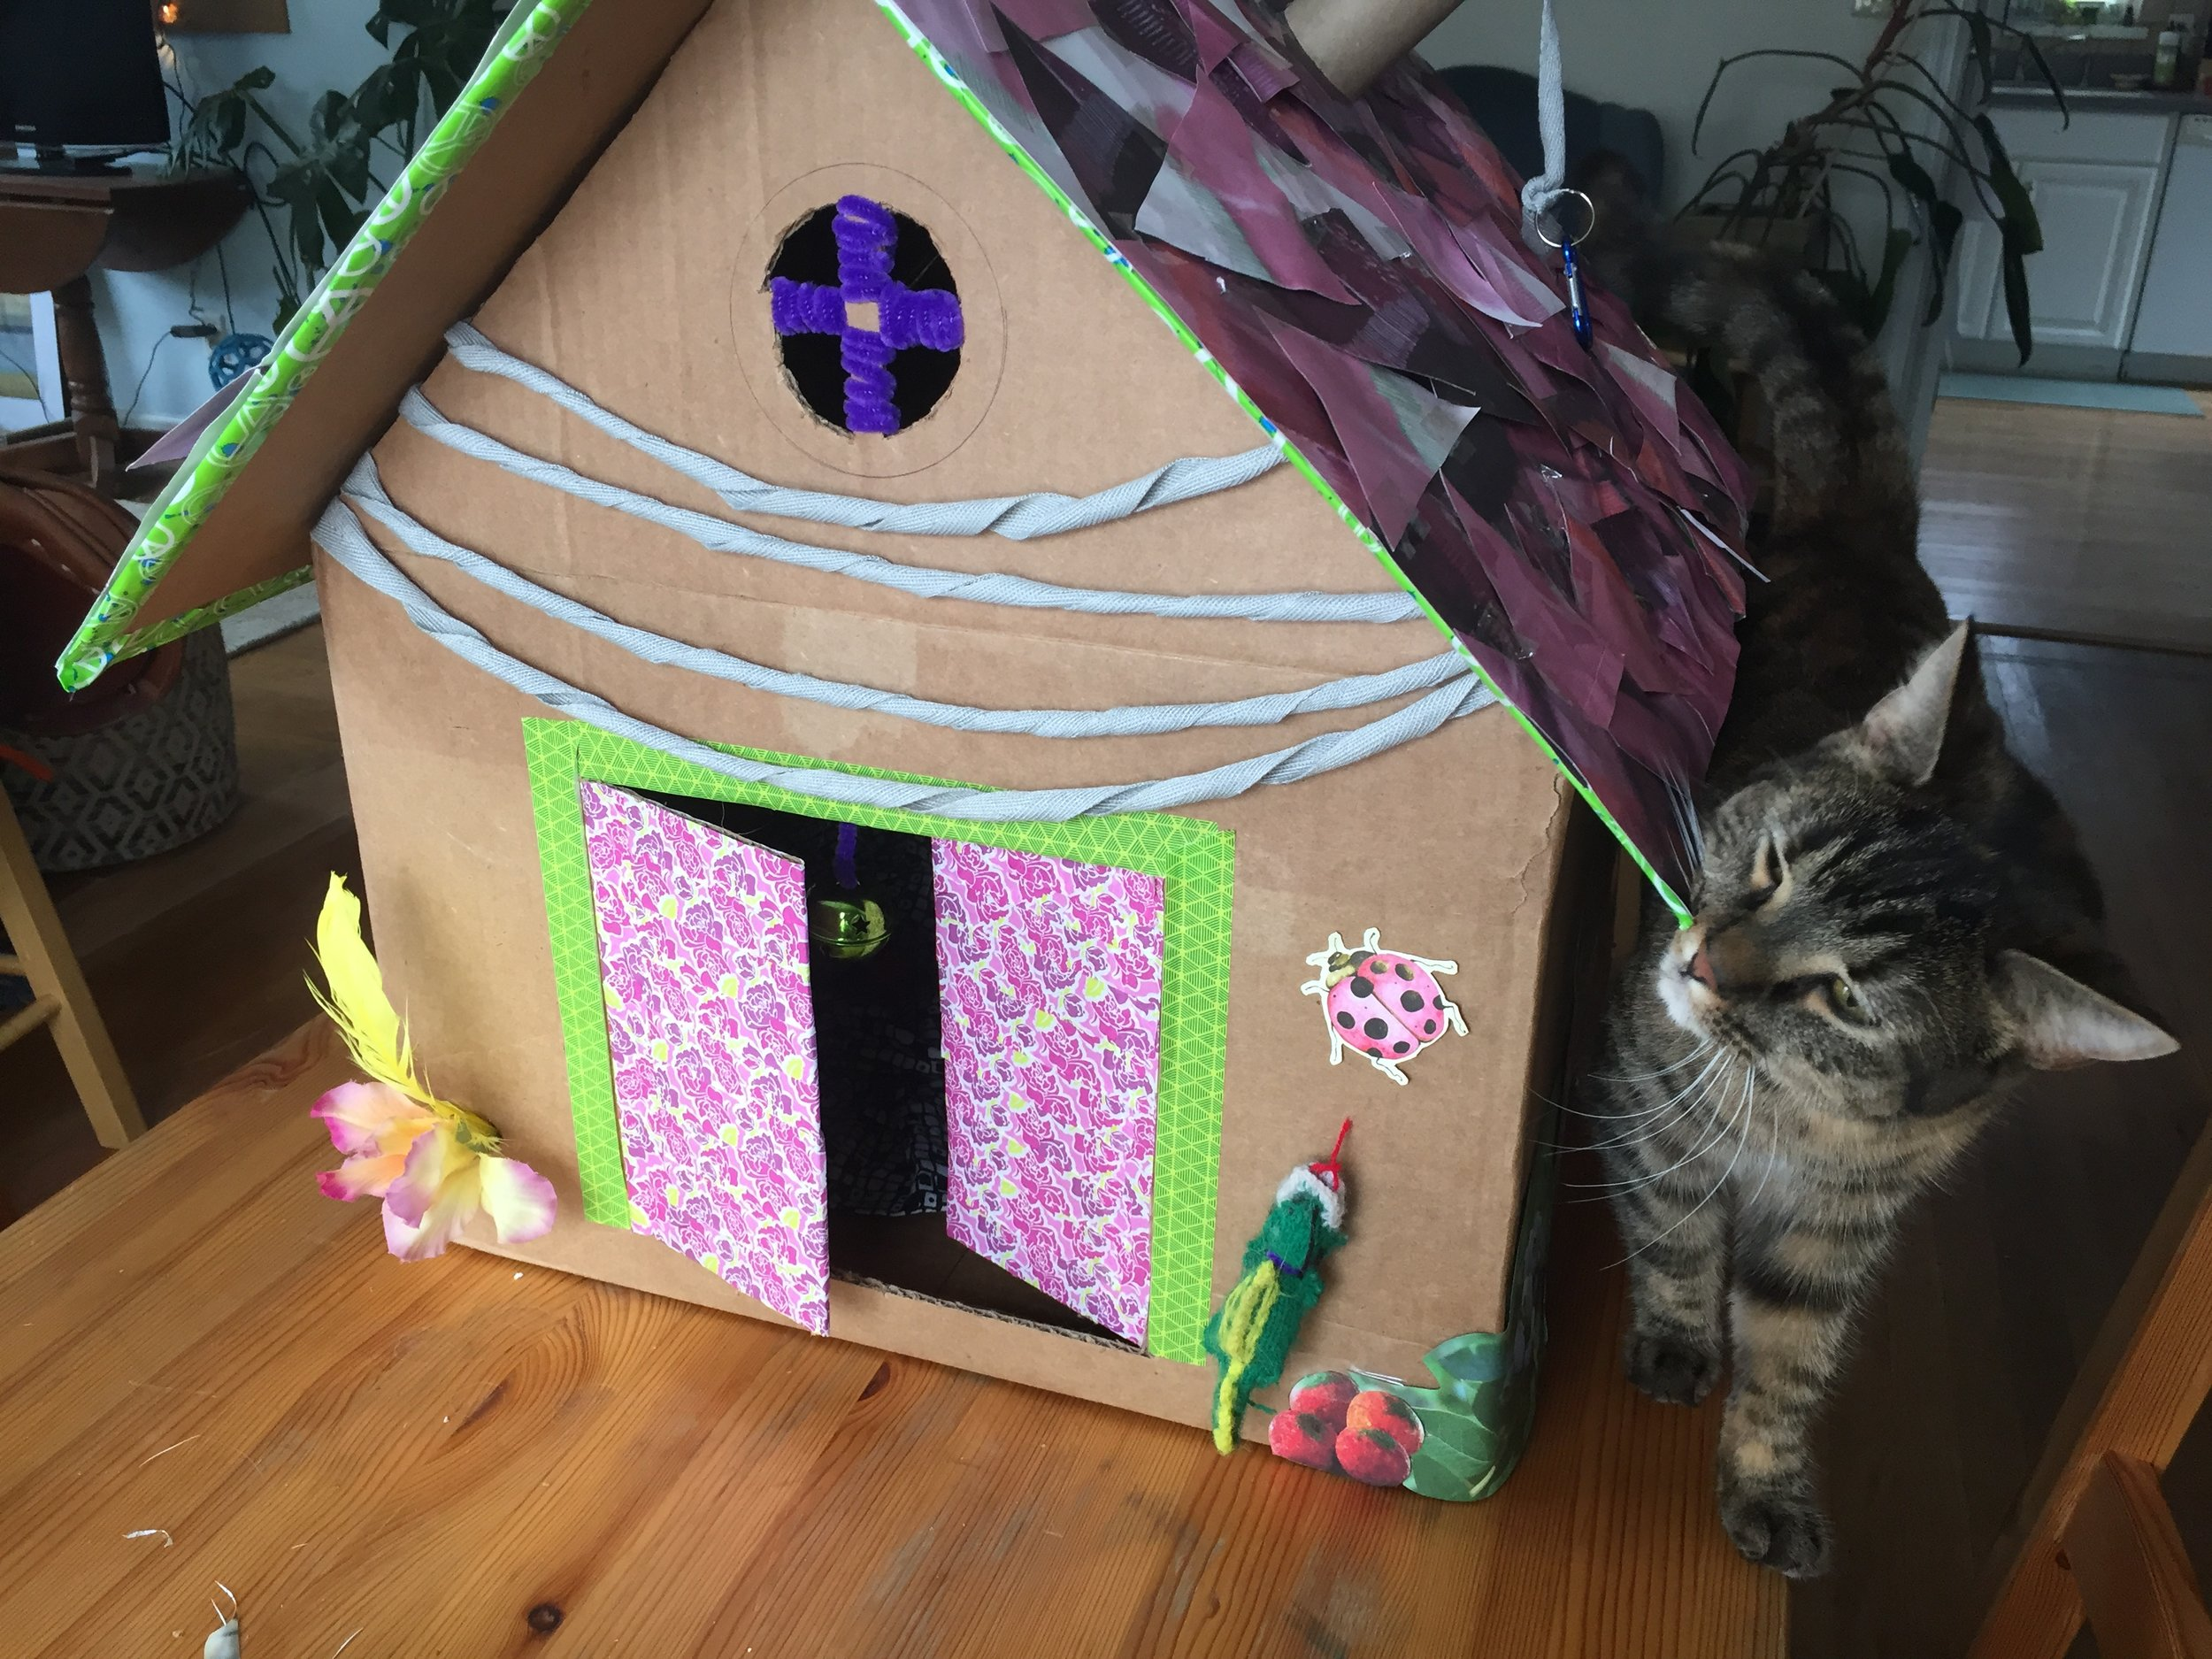 Arya depositing feline facial pheromone on her new kitty play house. Learn to make your own house by clicking the image!